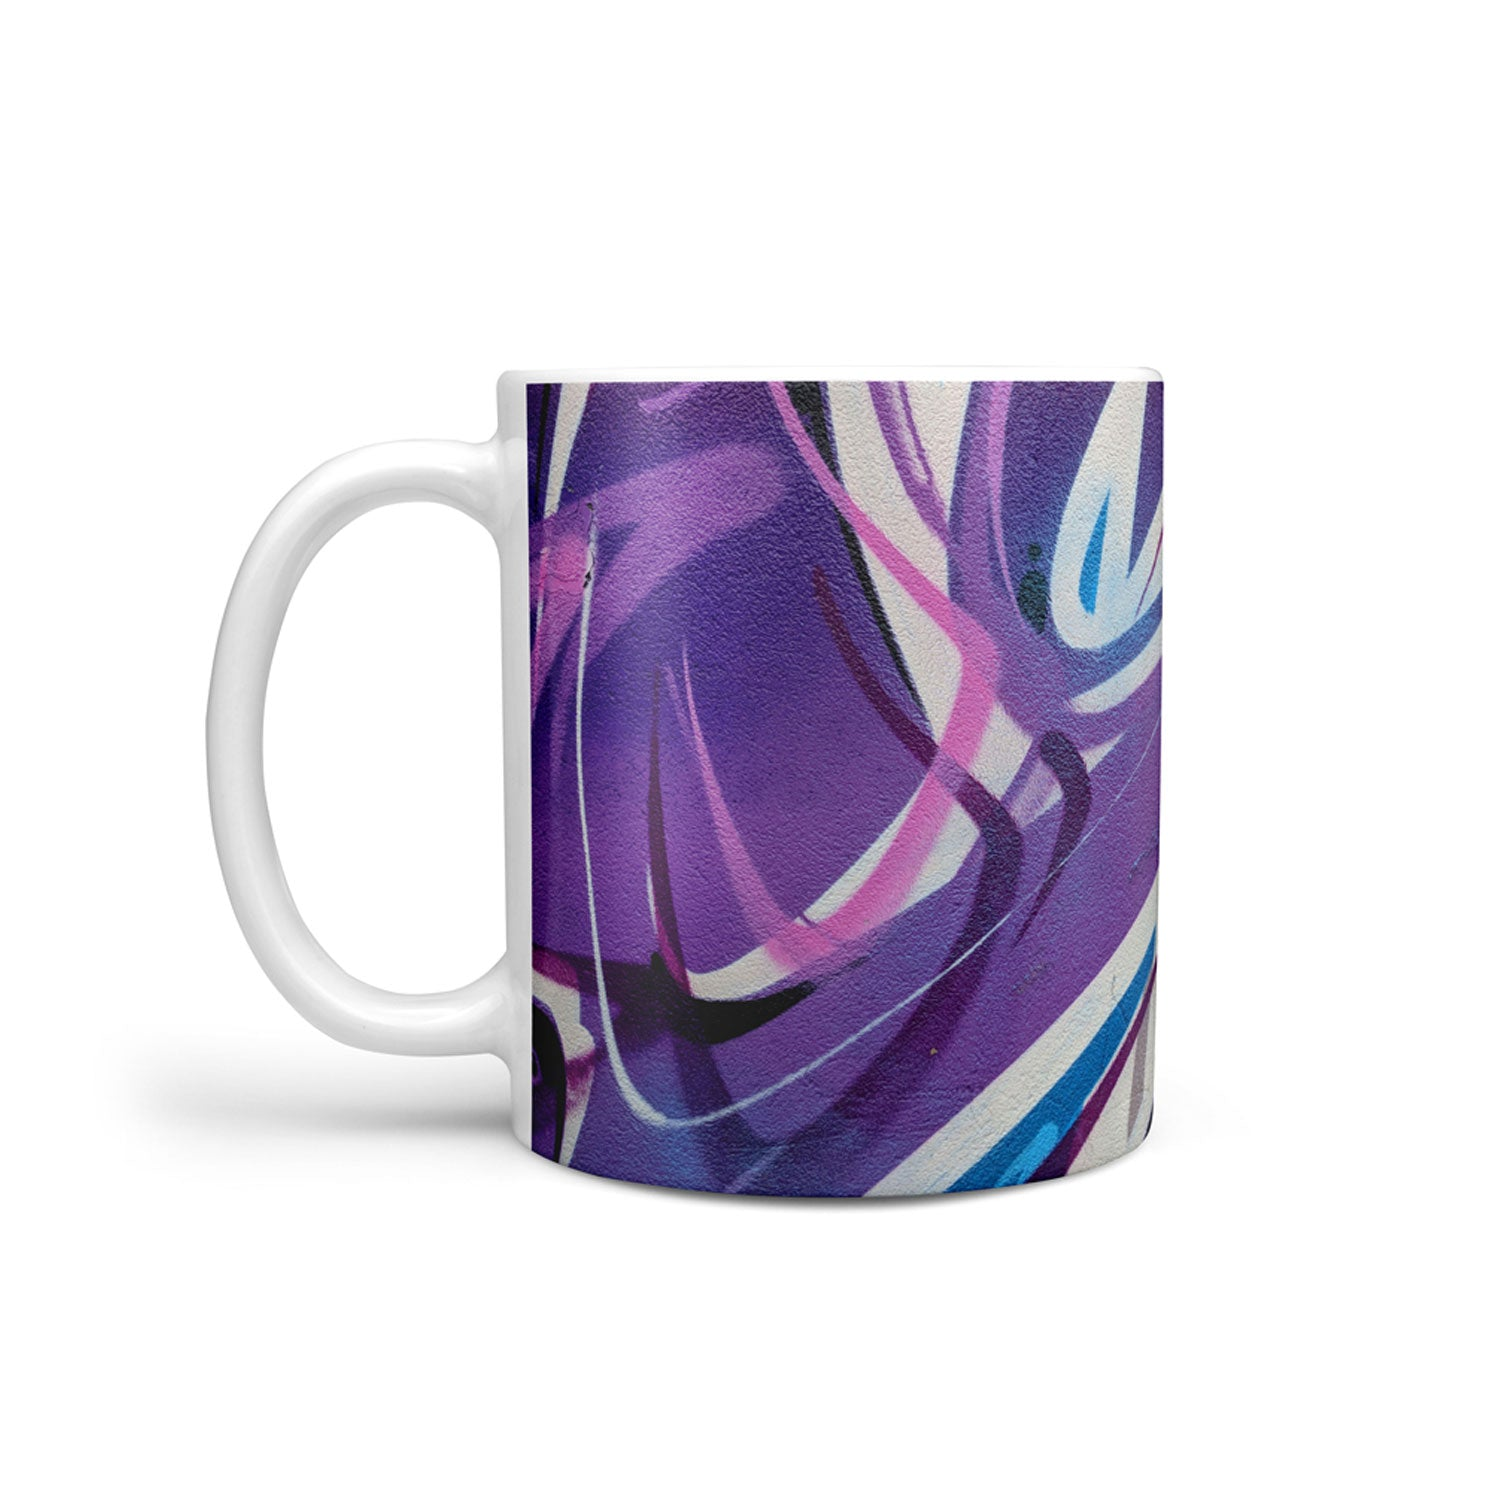 mug with purple and blue graffiti design